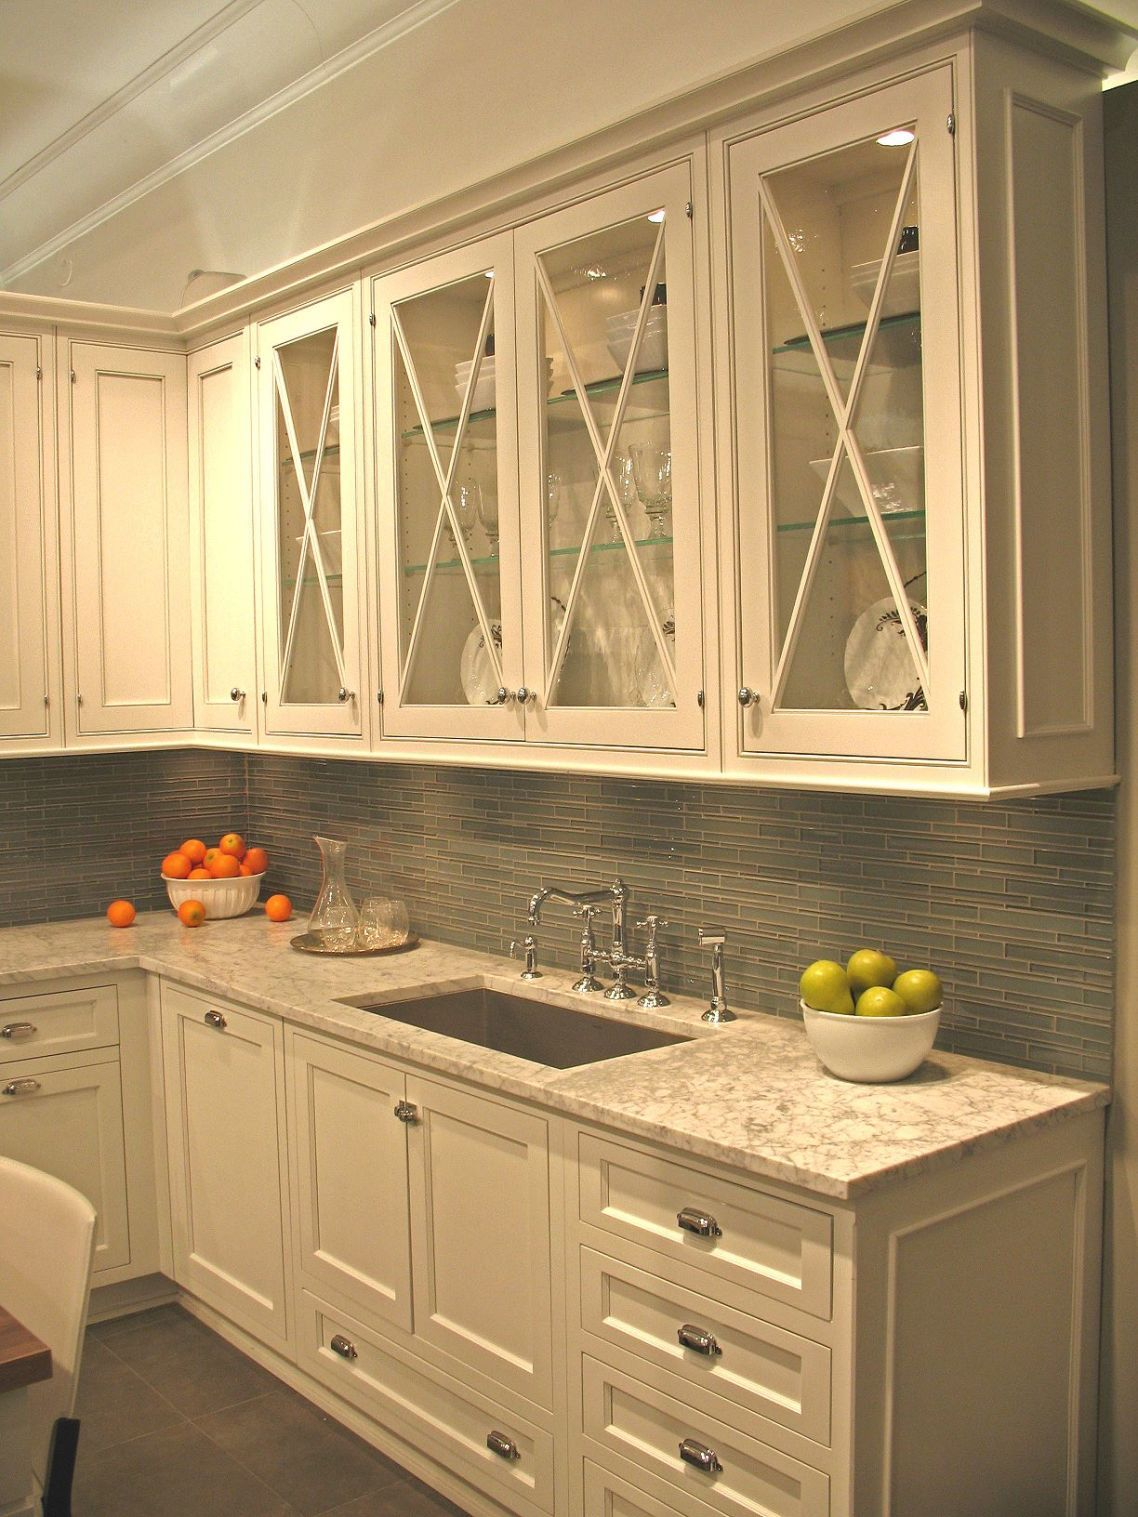 glass fronts on just a row of cabinets cream colored kitchen cabinets kitchen renovation on kitchen cabinets with glass doors on top id=38707